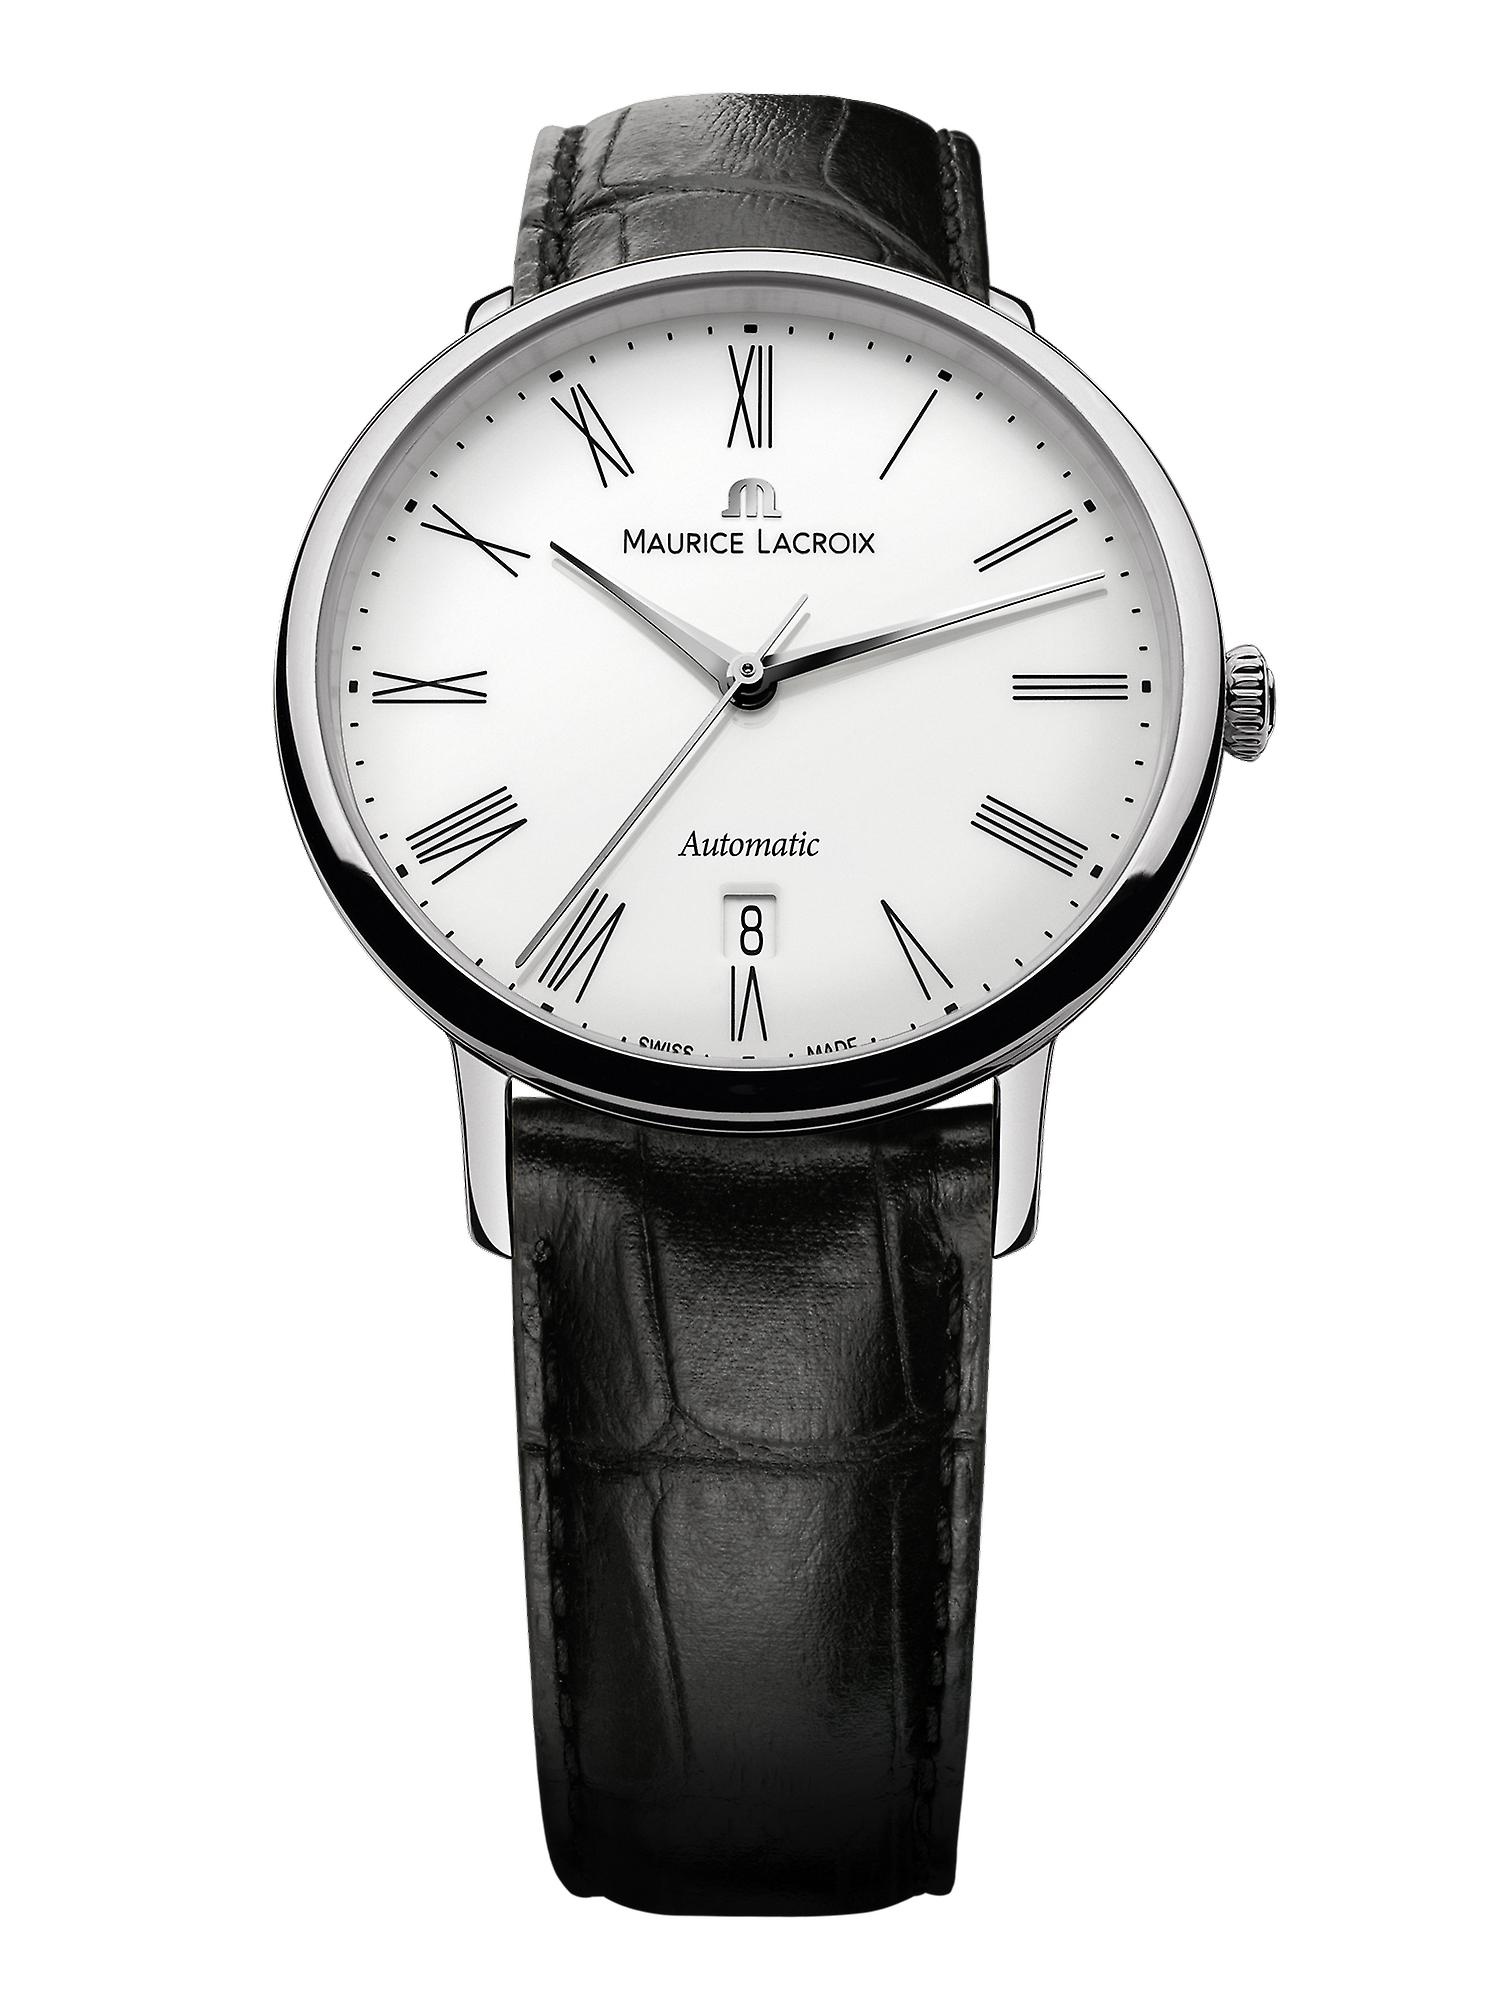 Maurice LaCroix Les Classiques Automatic White Dial Black Leather Strap Watch LC6067-SS001-110-1 RRP £1,700